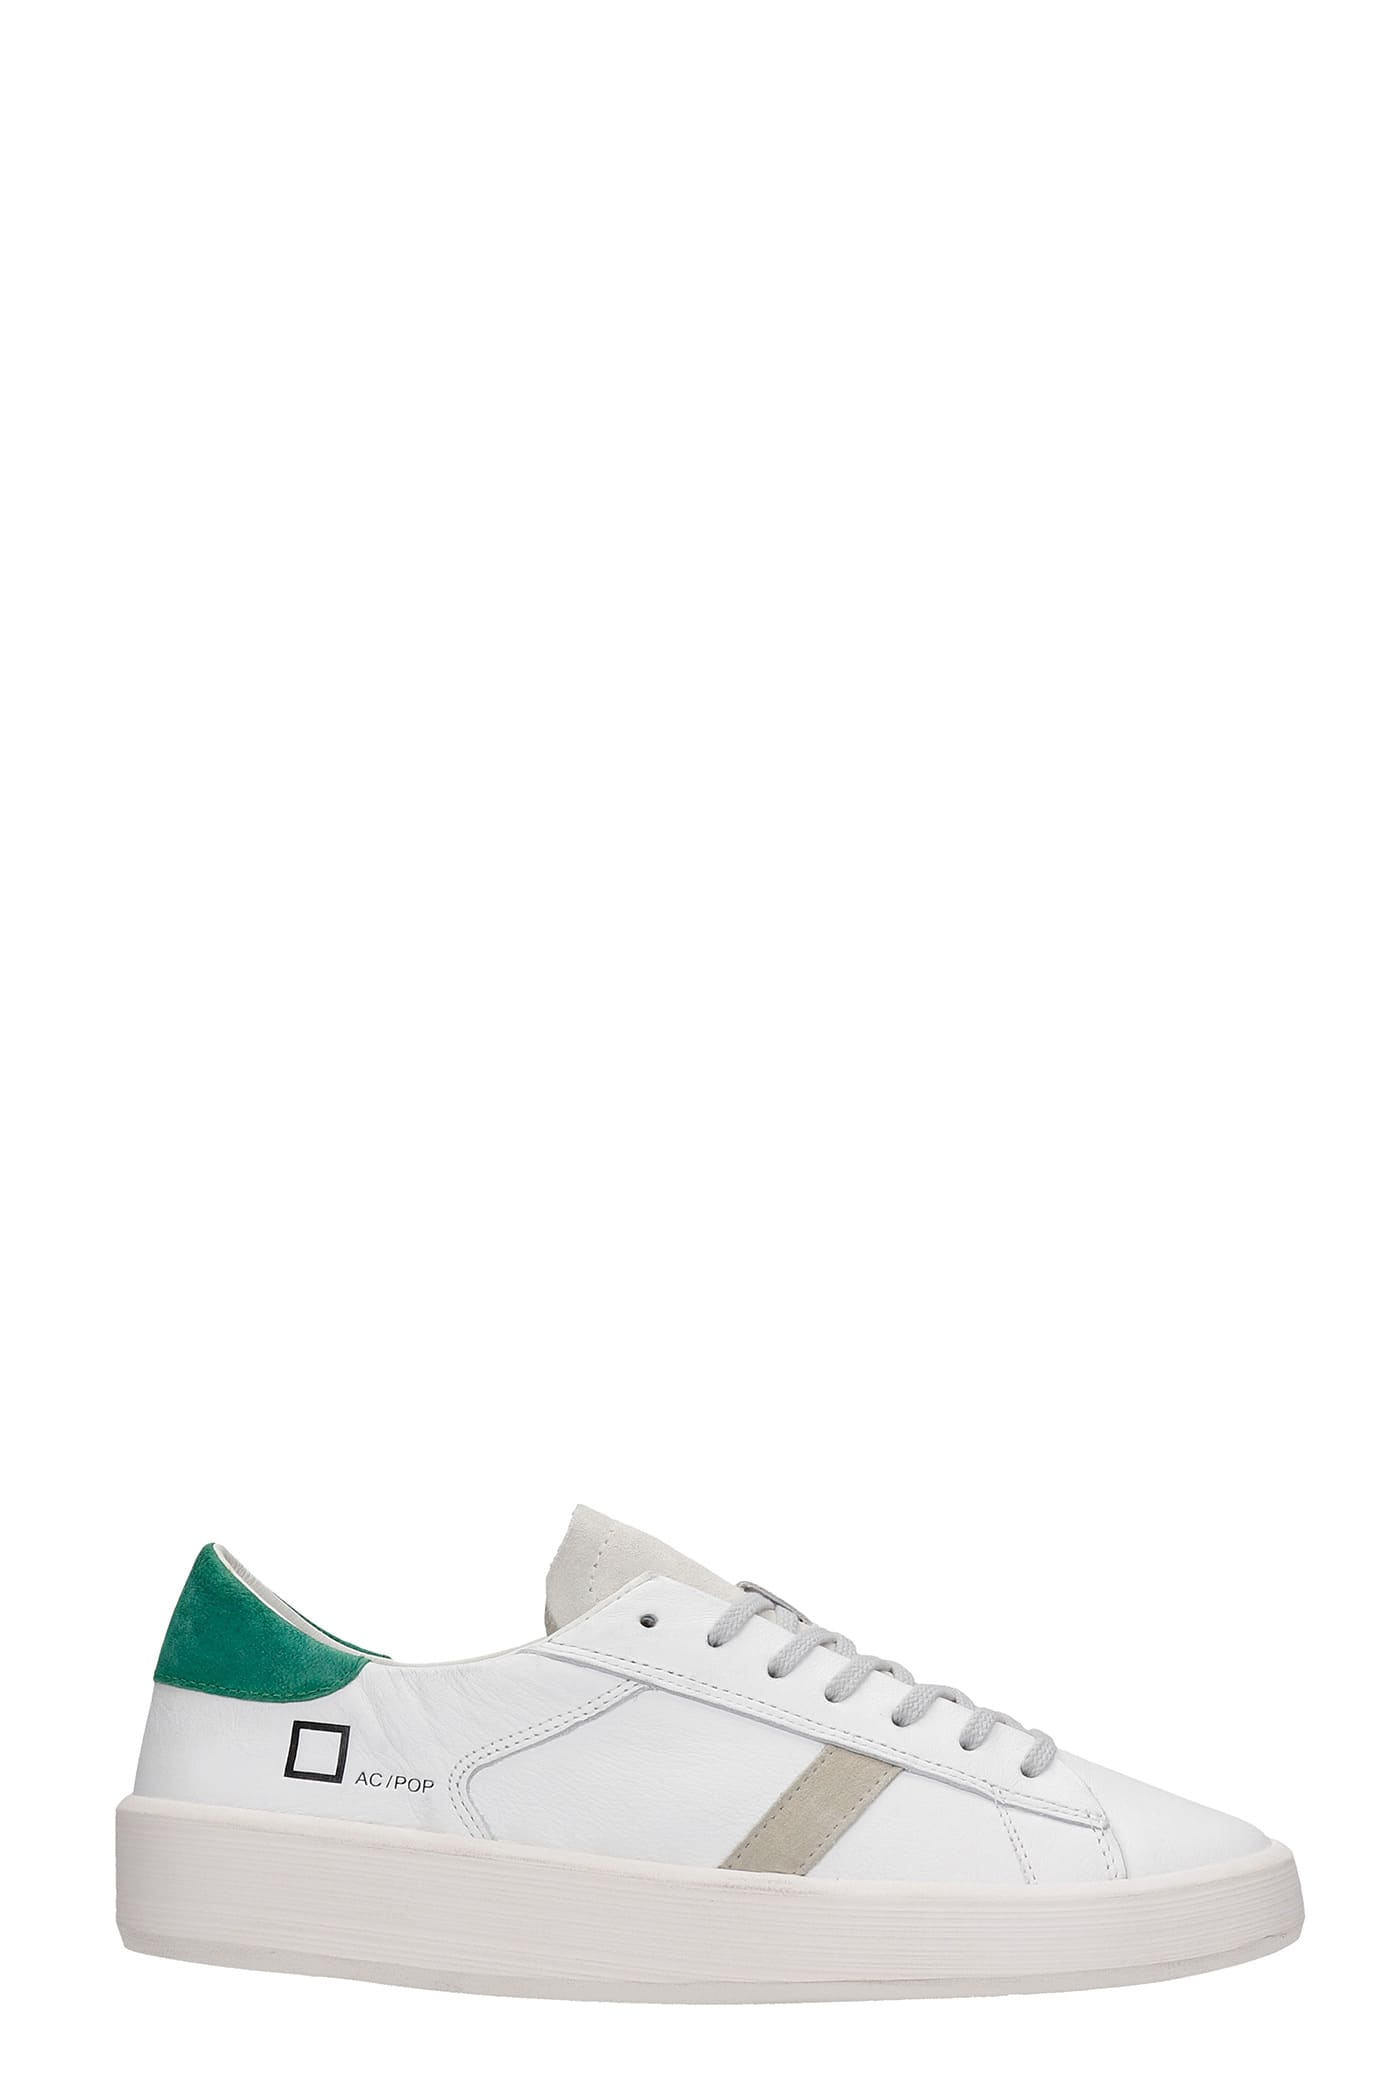 D.a.t.e. Leathers ACE SNEAKERS IN WHITE LEATHER